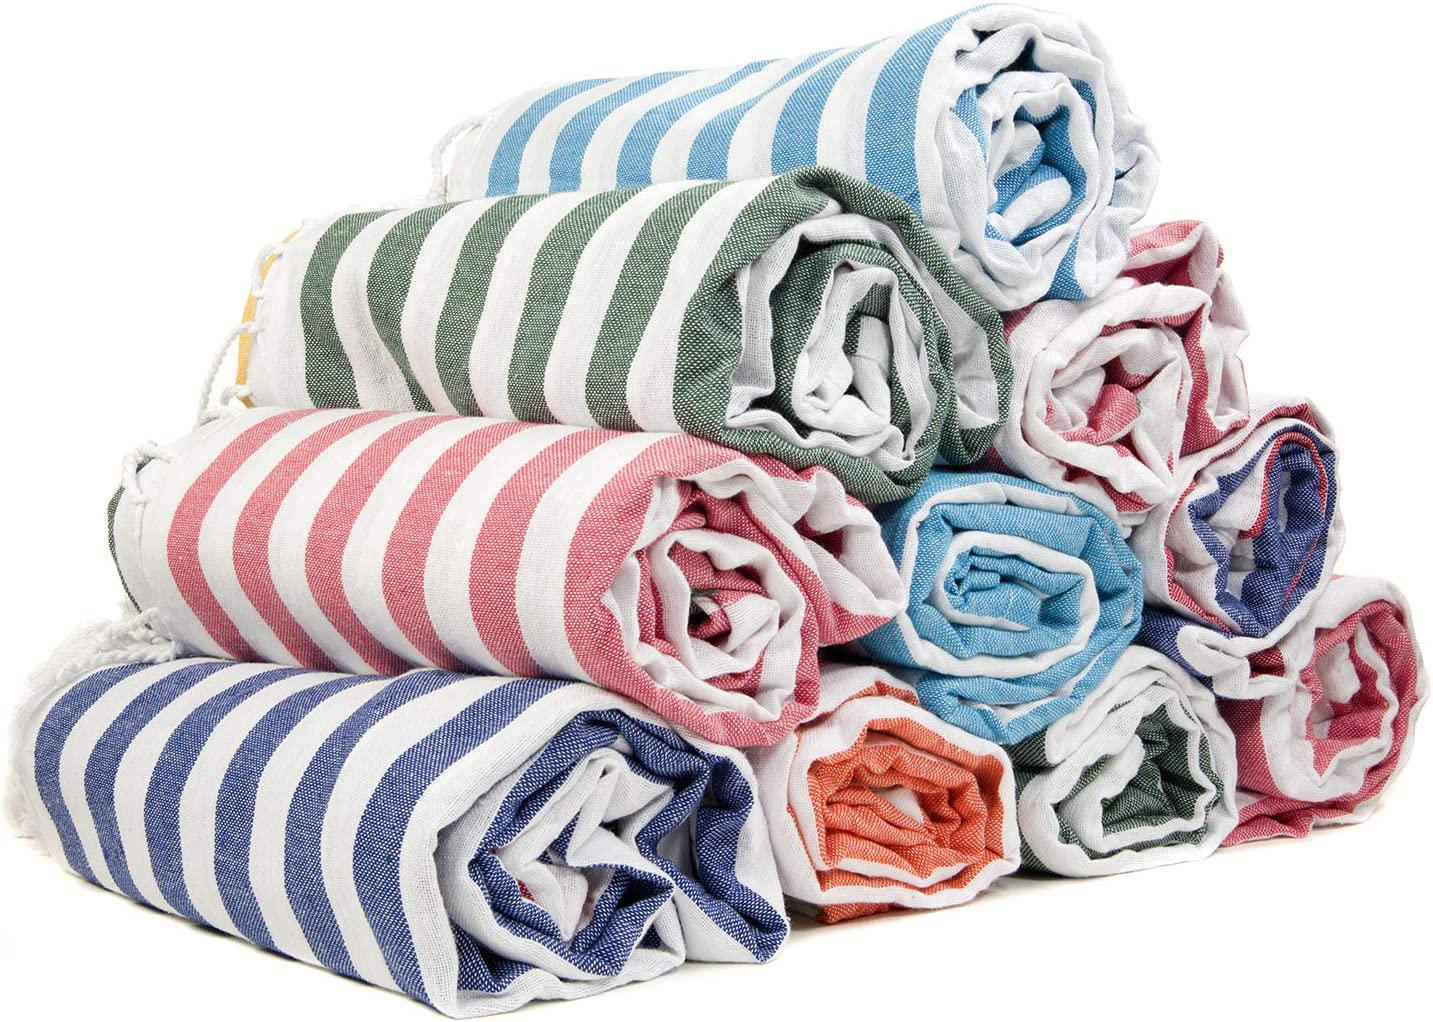 Gute (Set of 6) XXL Turkish Cotton Bath Beach Hammam Turkish Towel Sets Peshtemal Throw Fouta Blanket Set